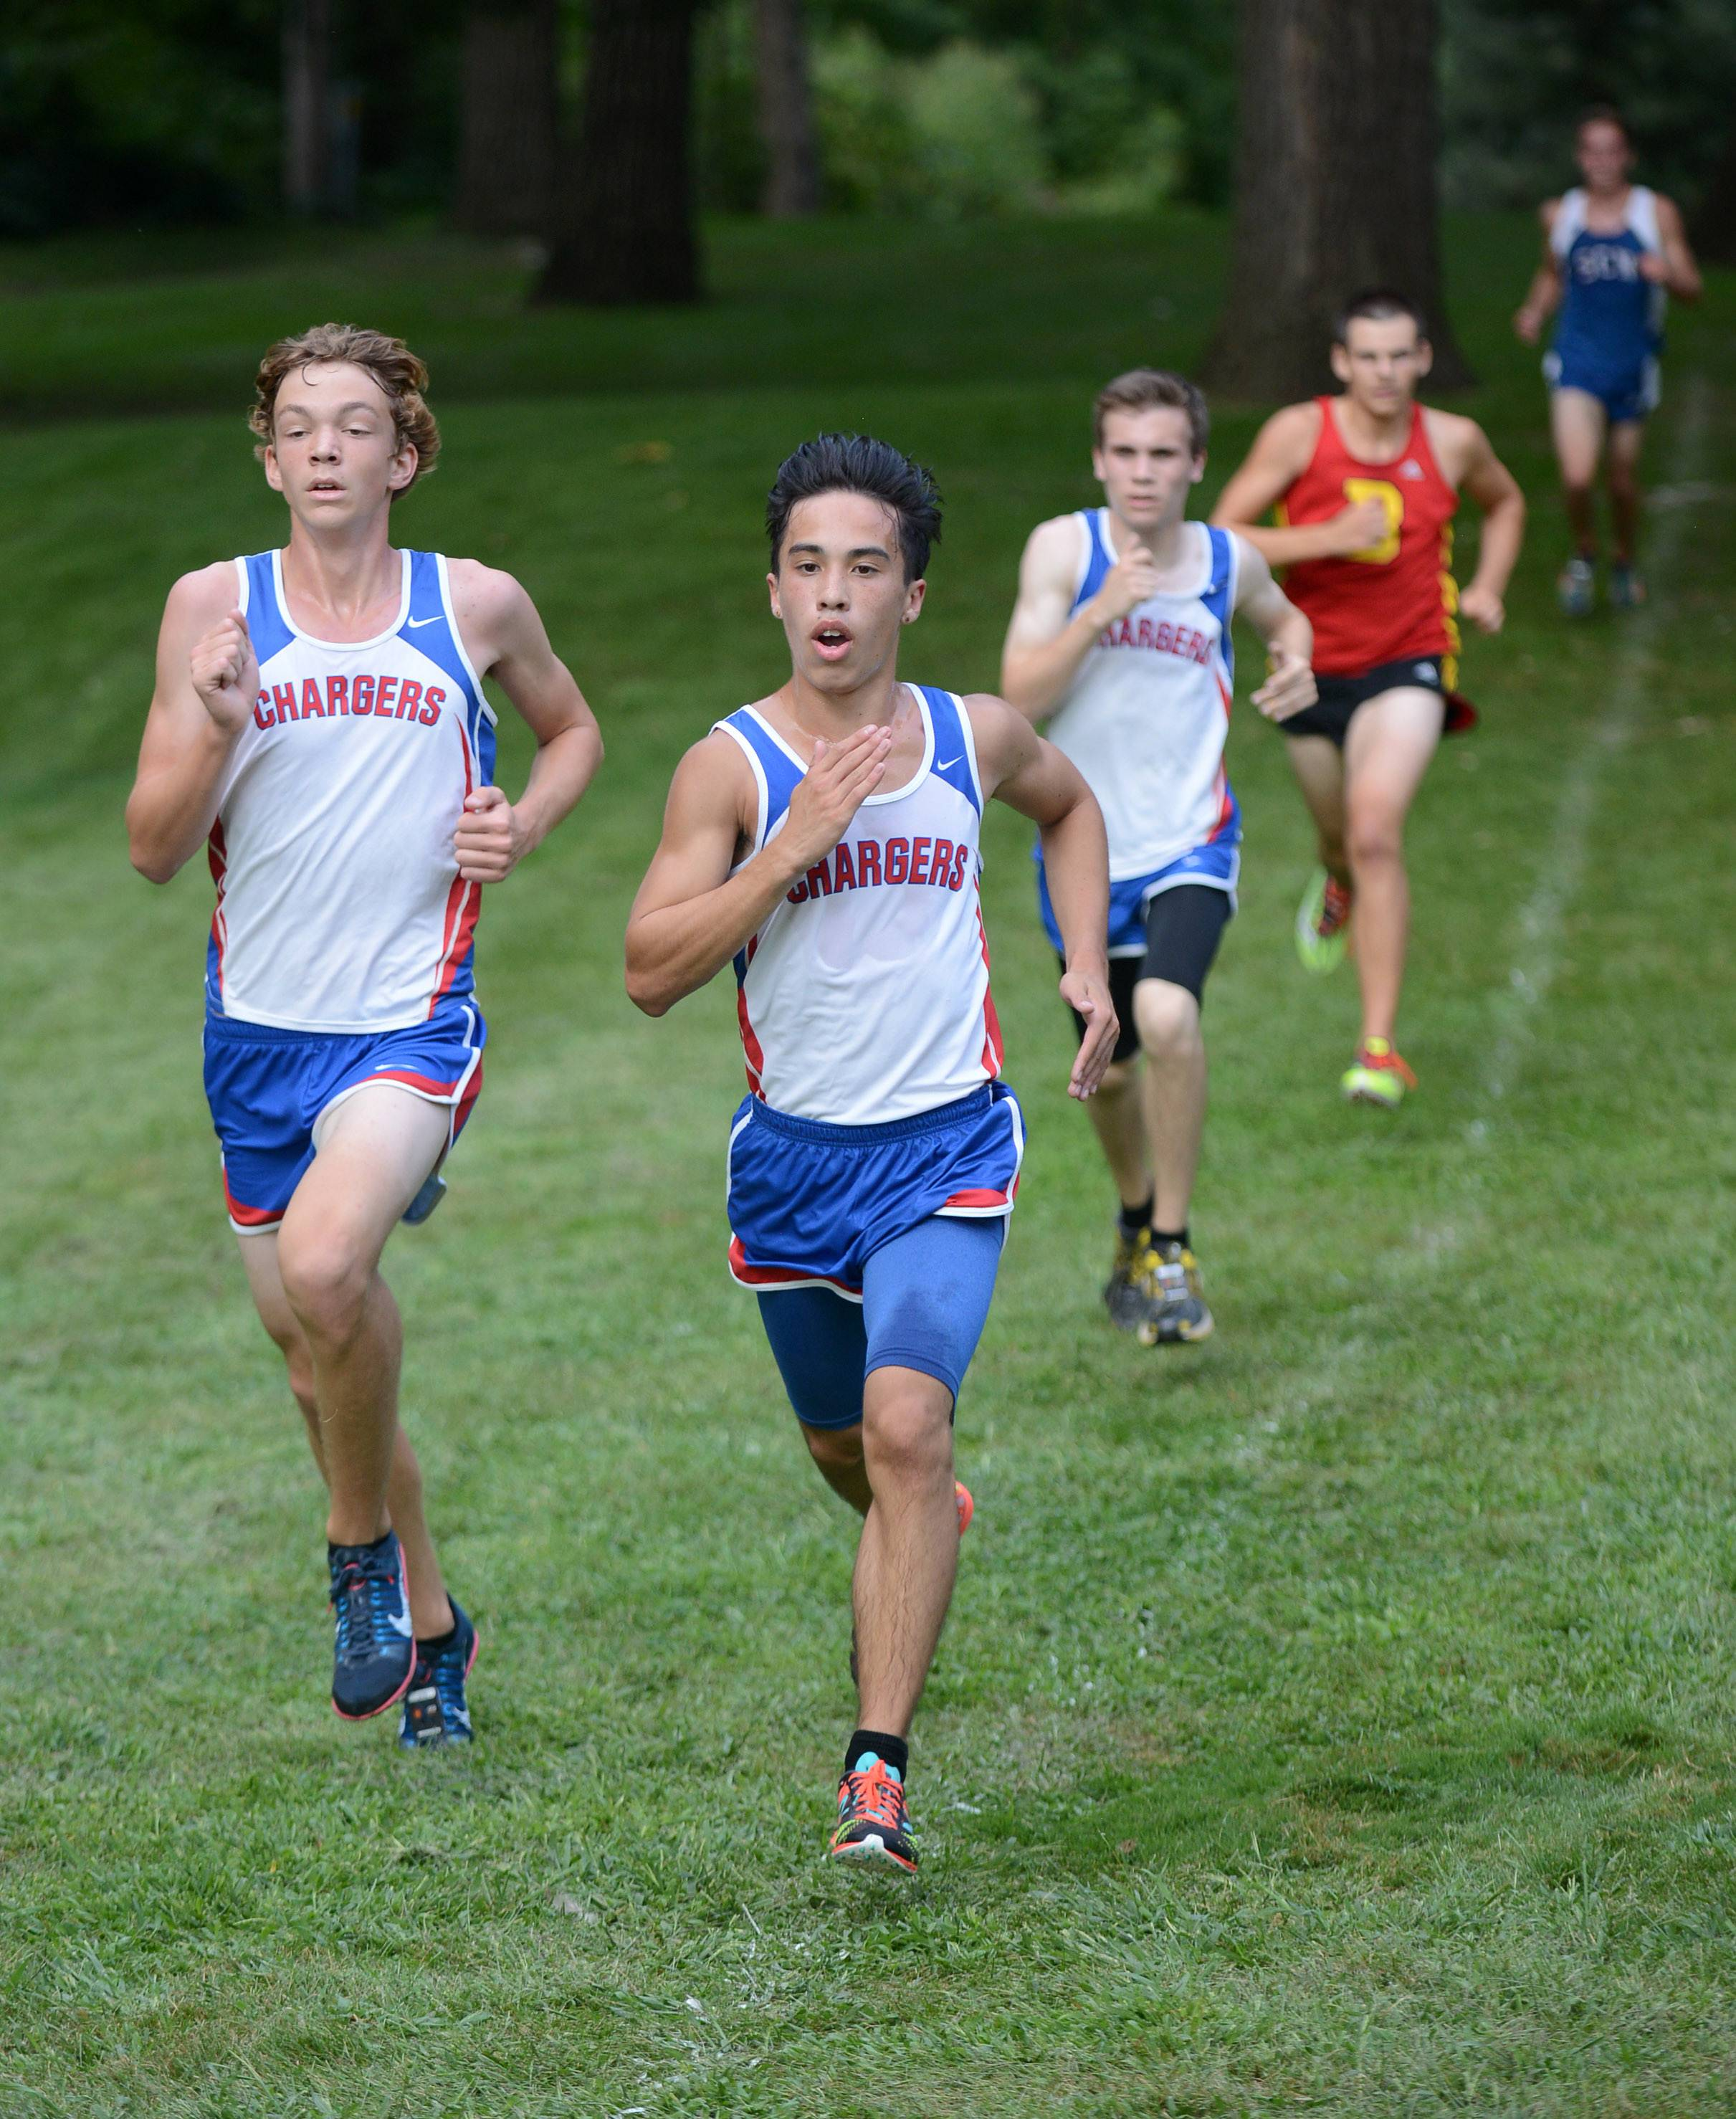 Dundee-Crown's Alex Clark, left, and Ricky Nueve run side-by-side nearing the final leg of the varsity run at the Elgin Invite cross country meet at Lords Park in Elgin on Tuesday.